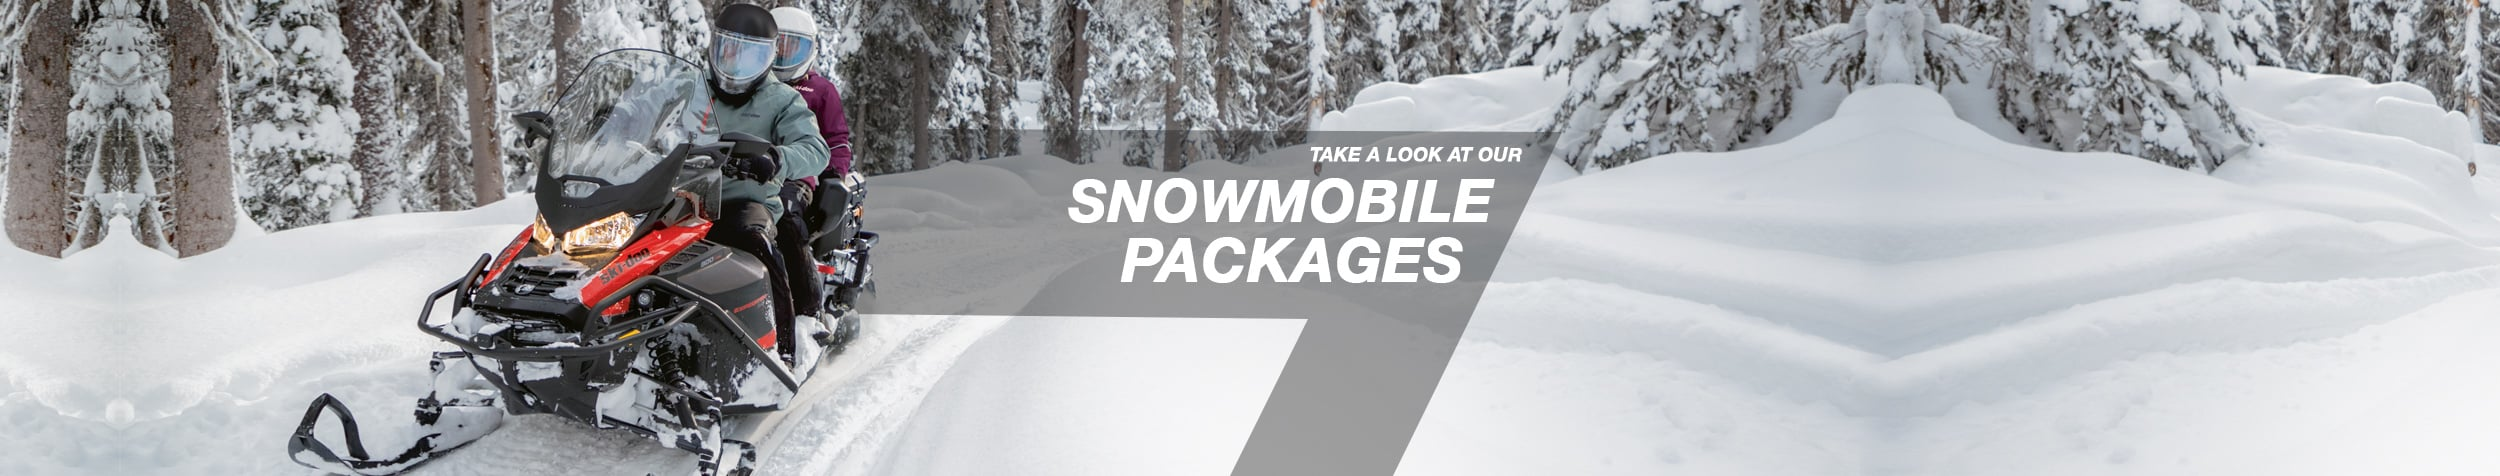 Take a look at our snowmobile packages